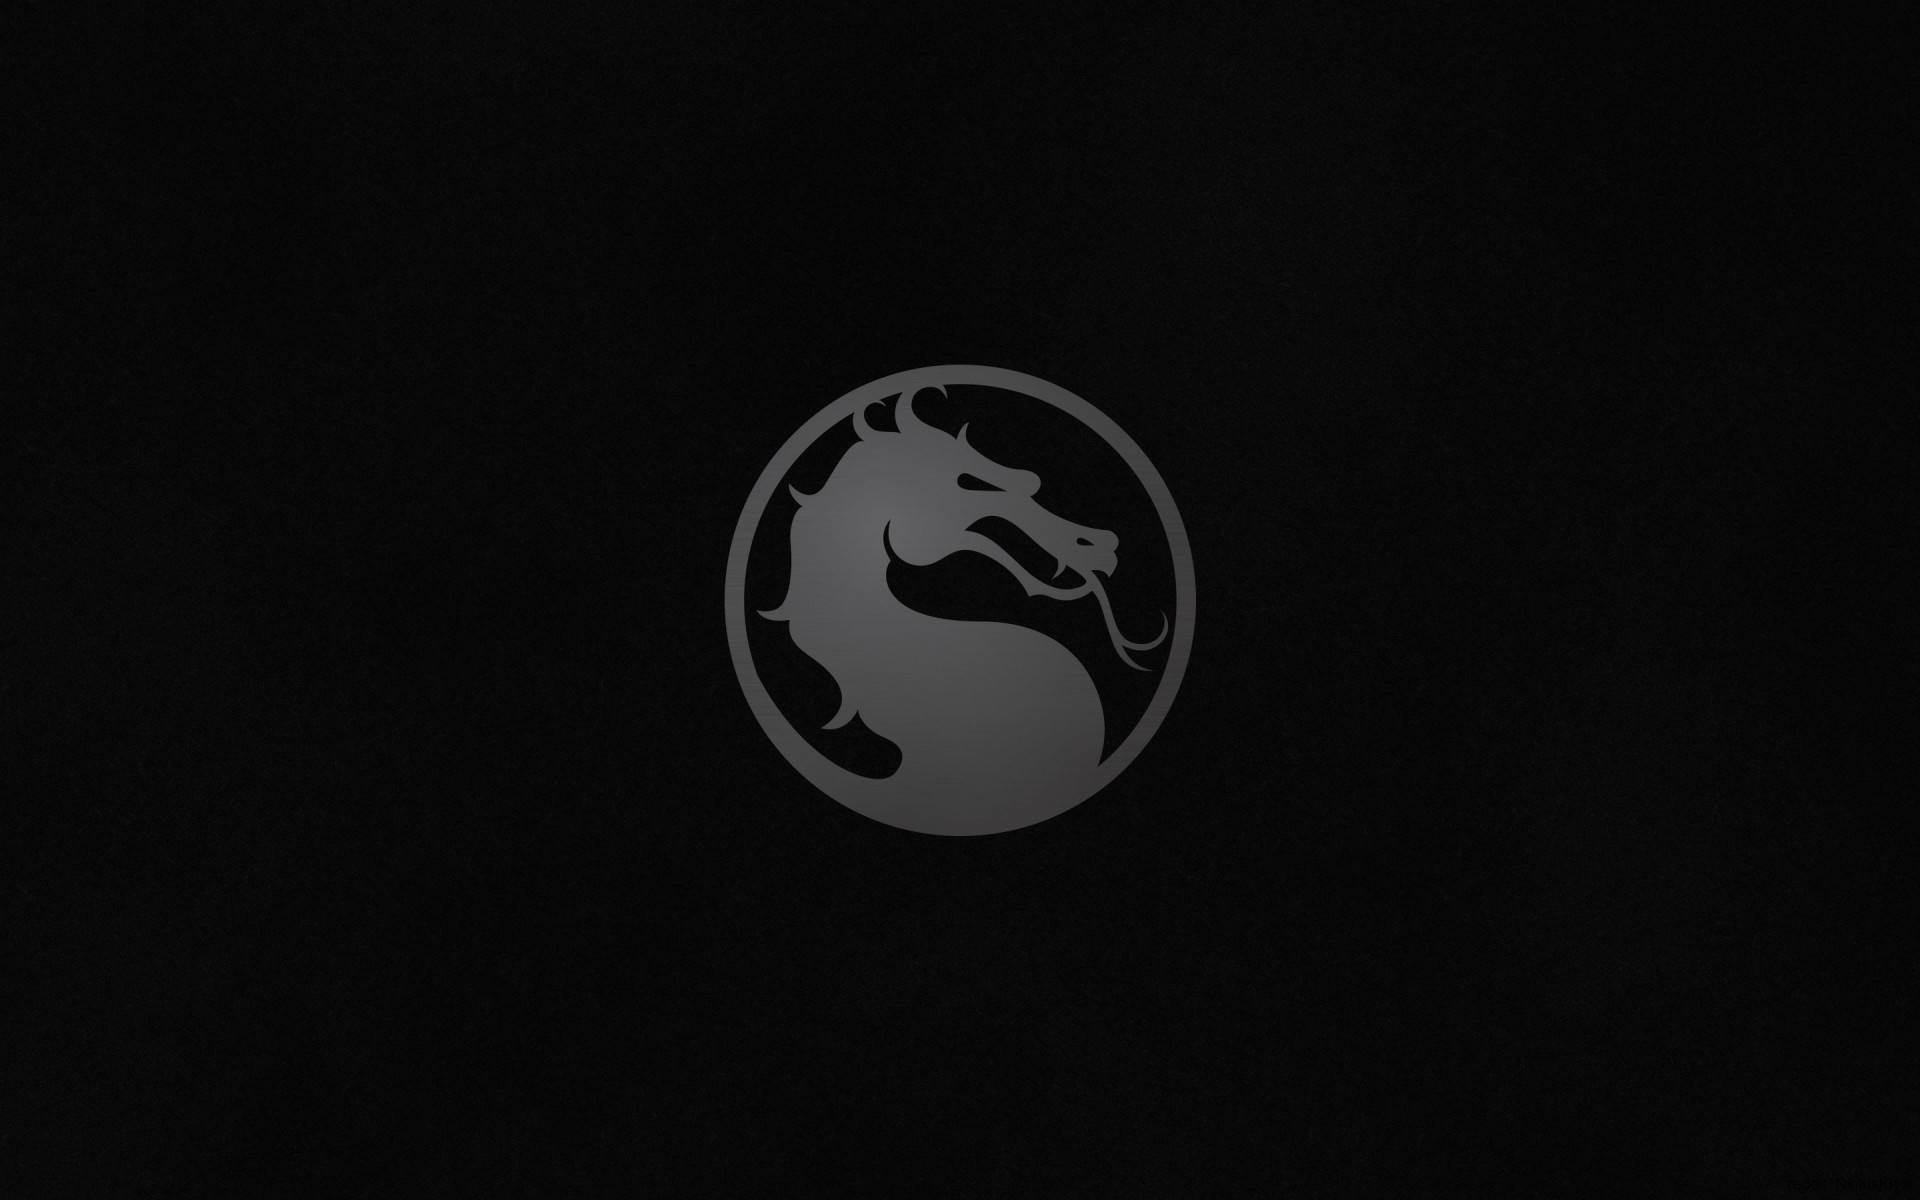 Mortal Kombat X Logo Wallpaper for Desktop 1920x1200